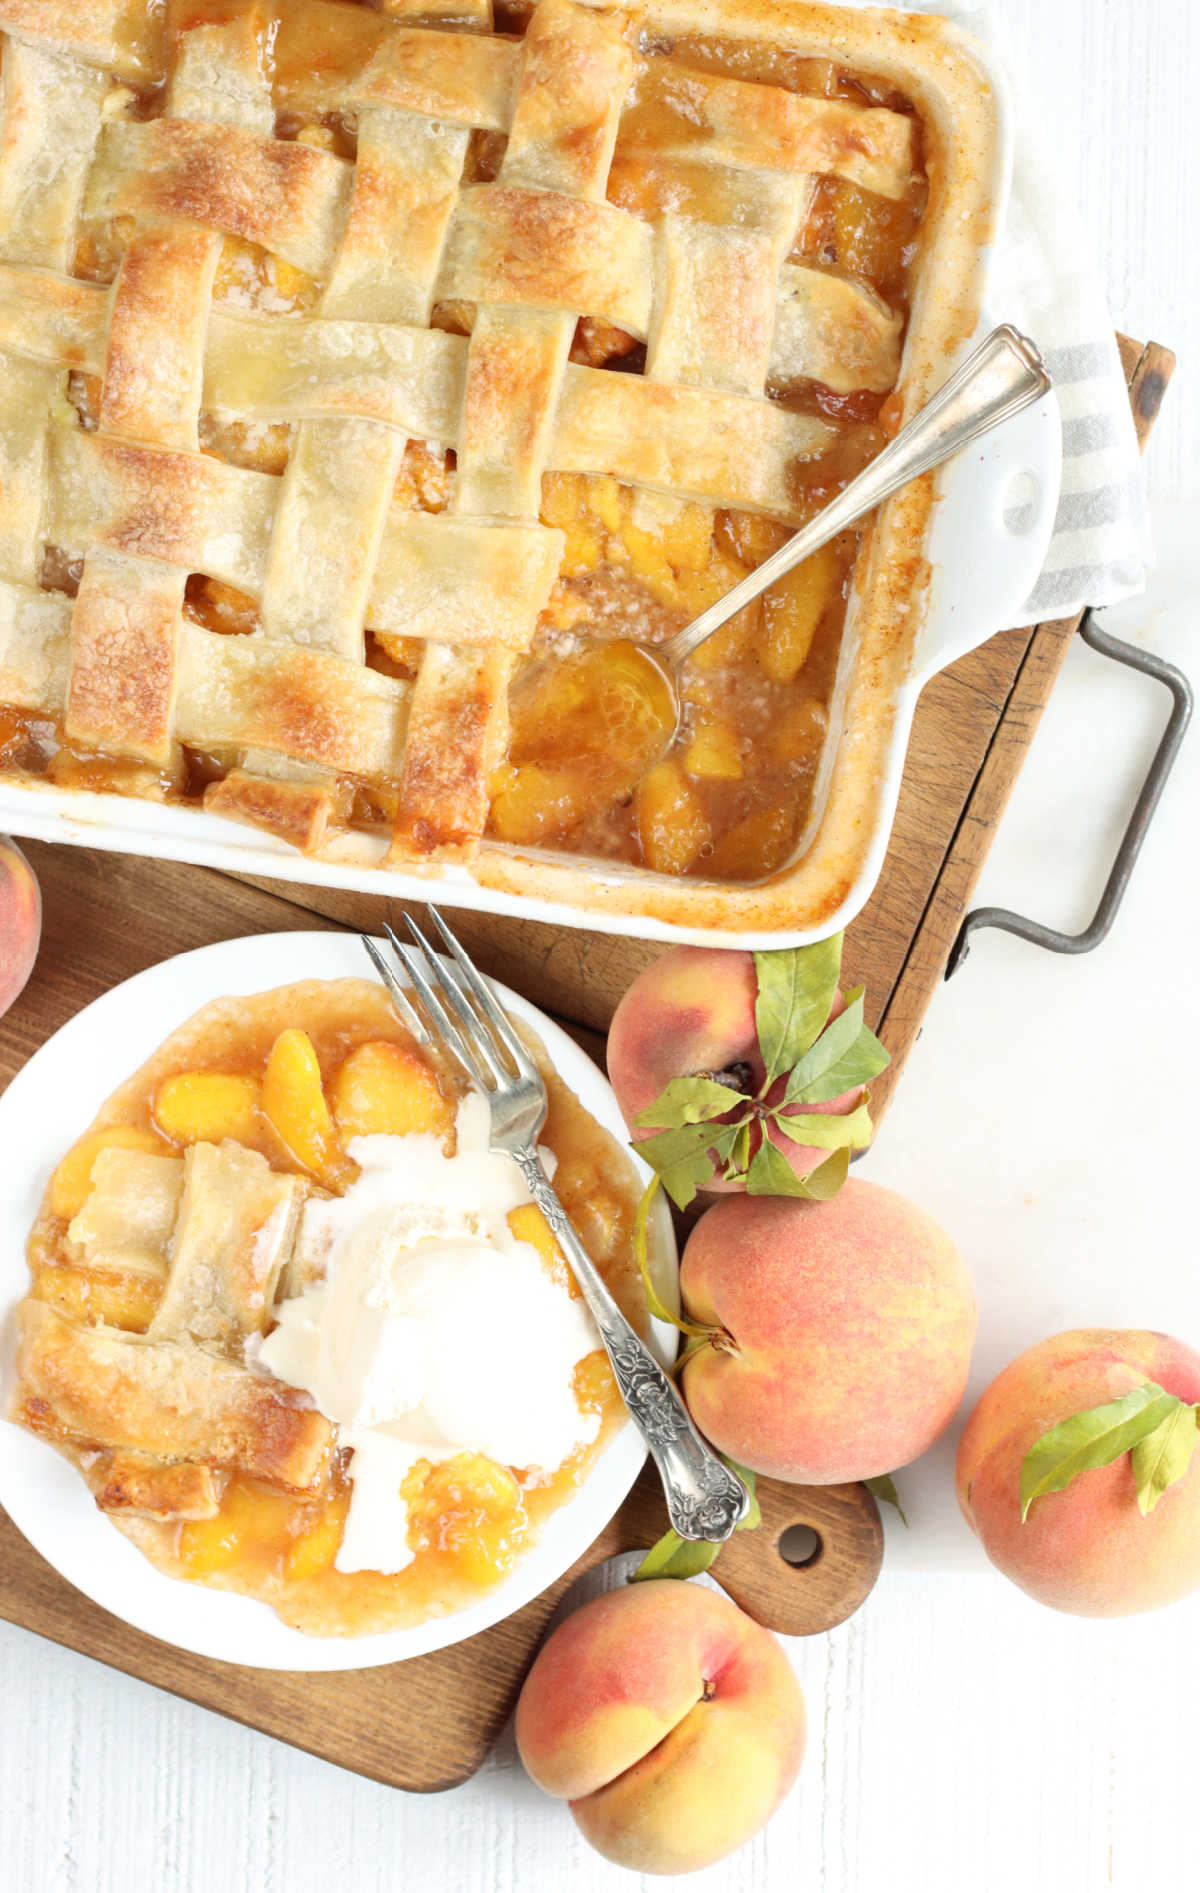 Peach cobbler with pie crust in white baking dish, piece on small white plate and fork, peaches around.